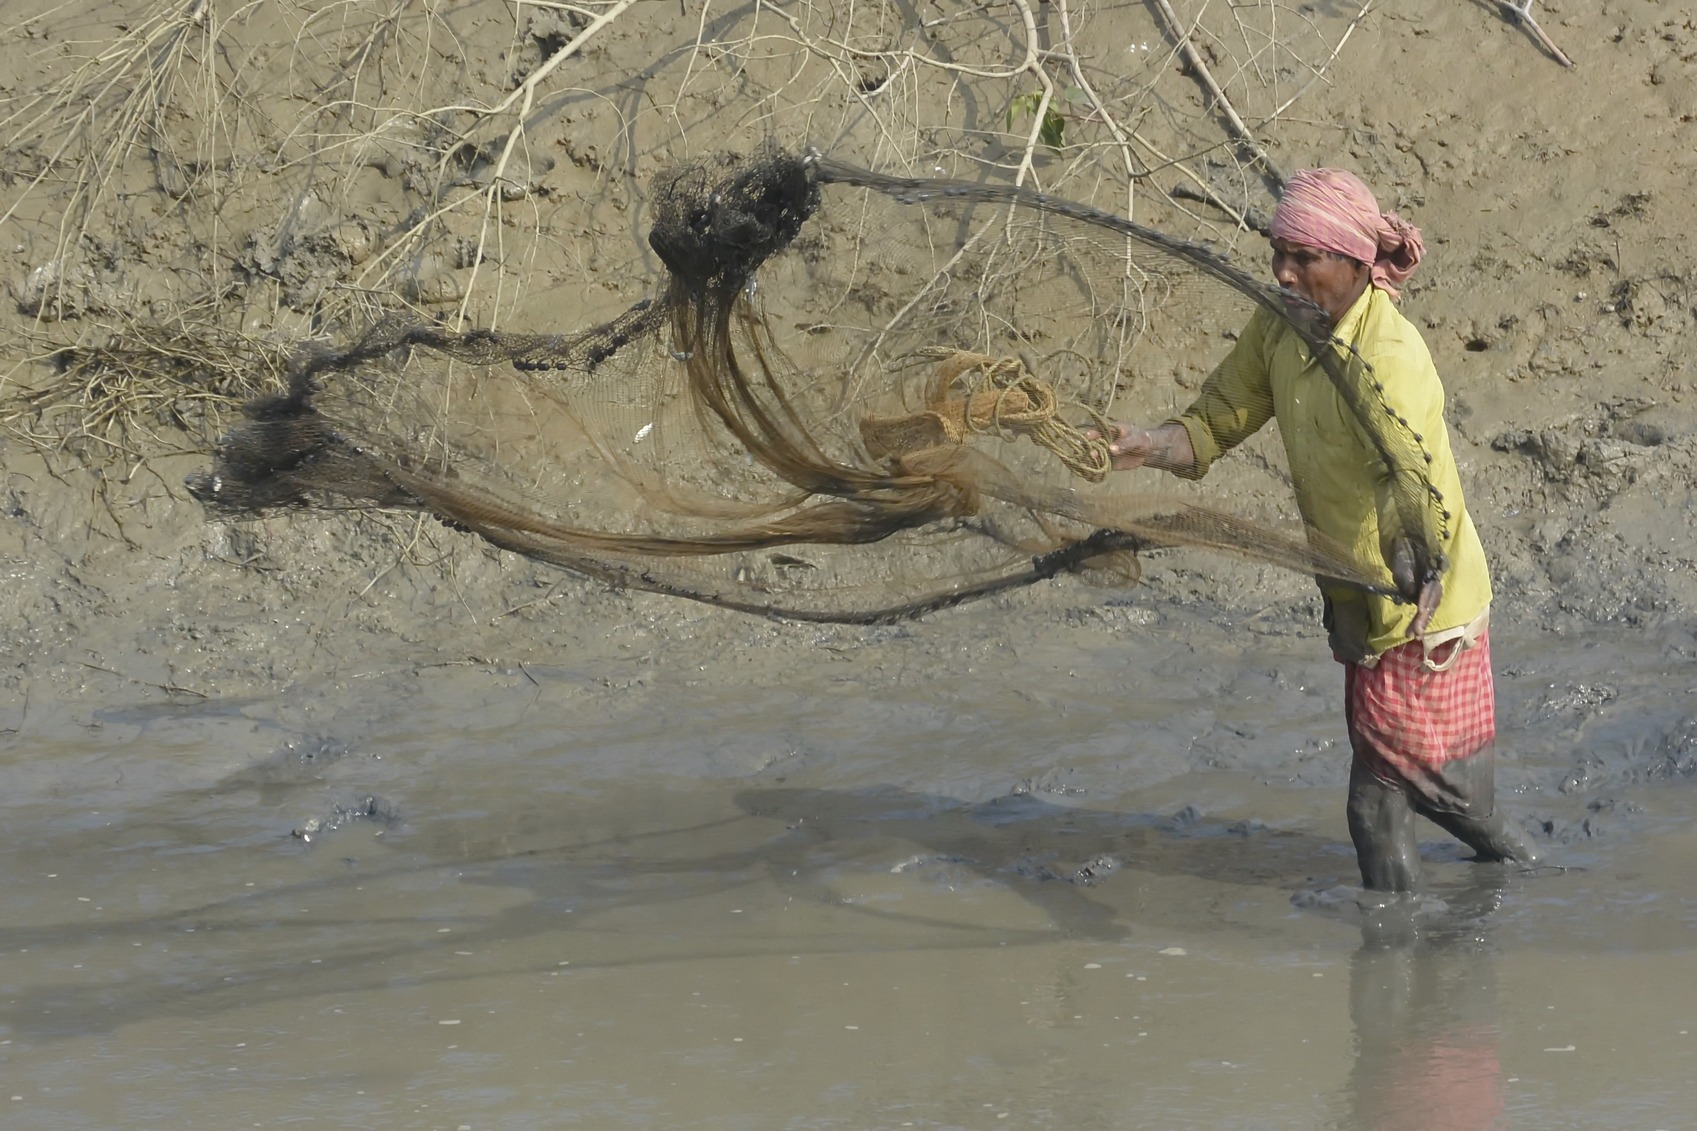 Sunderbans, West Bengal State, India - January 10, 2014: Farmer Casts A Large Round Fishing Net At The Bottom Of A Drought Stricken Farmland Pond.  There Are A Few Tiny Fish Caught In The Netting From The Last Net Casting. The Man Stands In Knee-deep Mud In The Drought Stricken Pond.